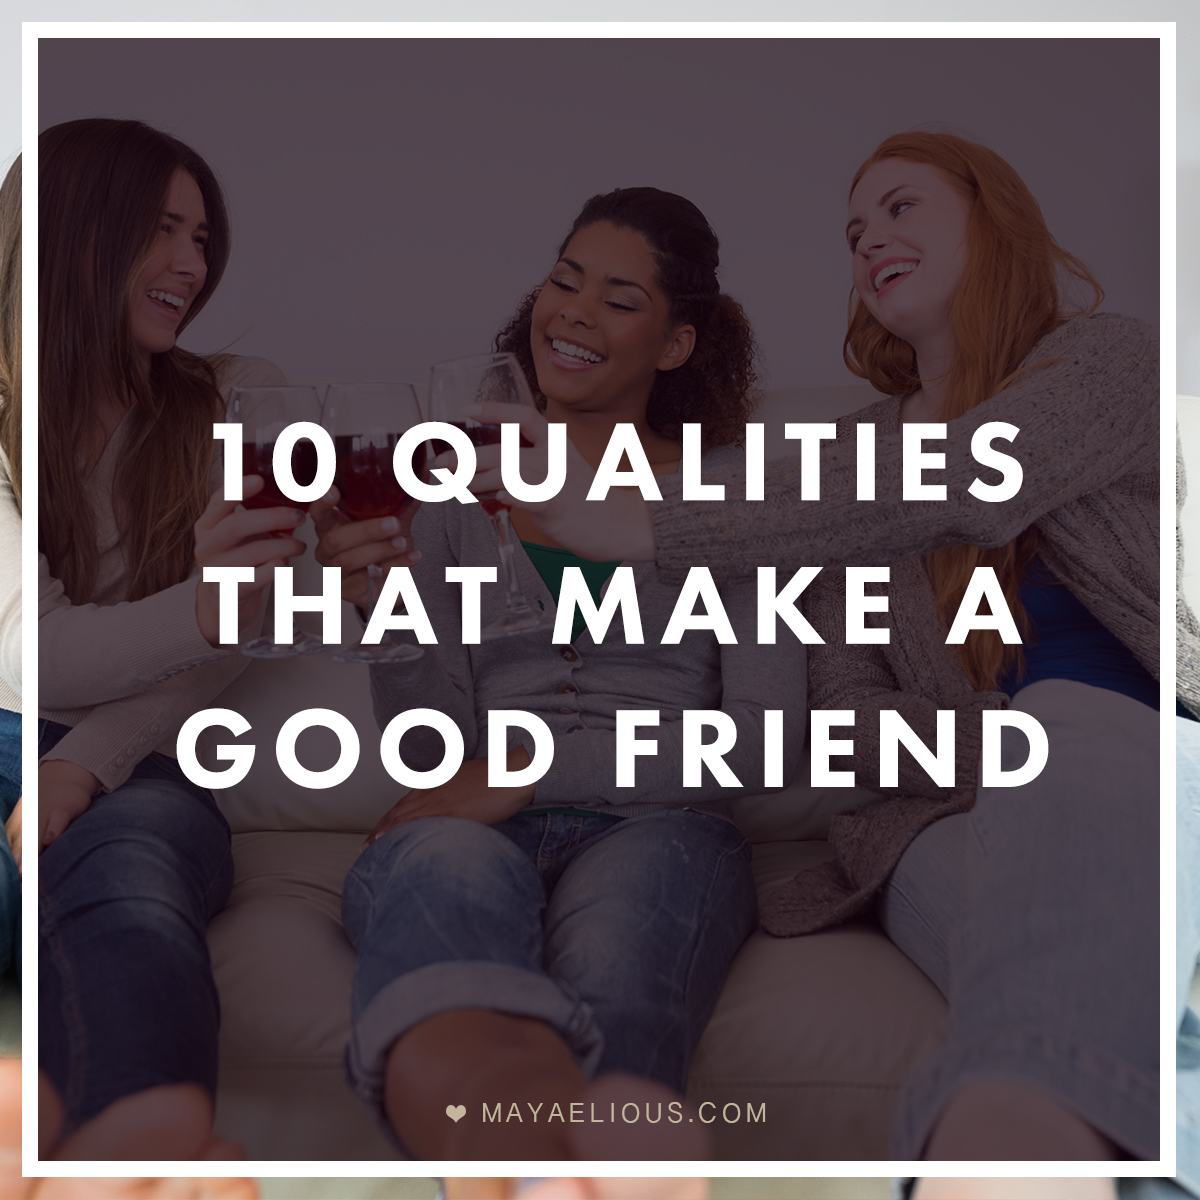 essay about good friendship And he wrote all the good qualities which he personally liked bout the person   friendship essay is a kind of writing you may be assigned to this issue can.